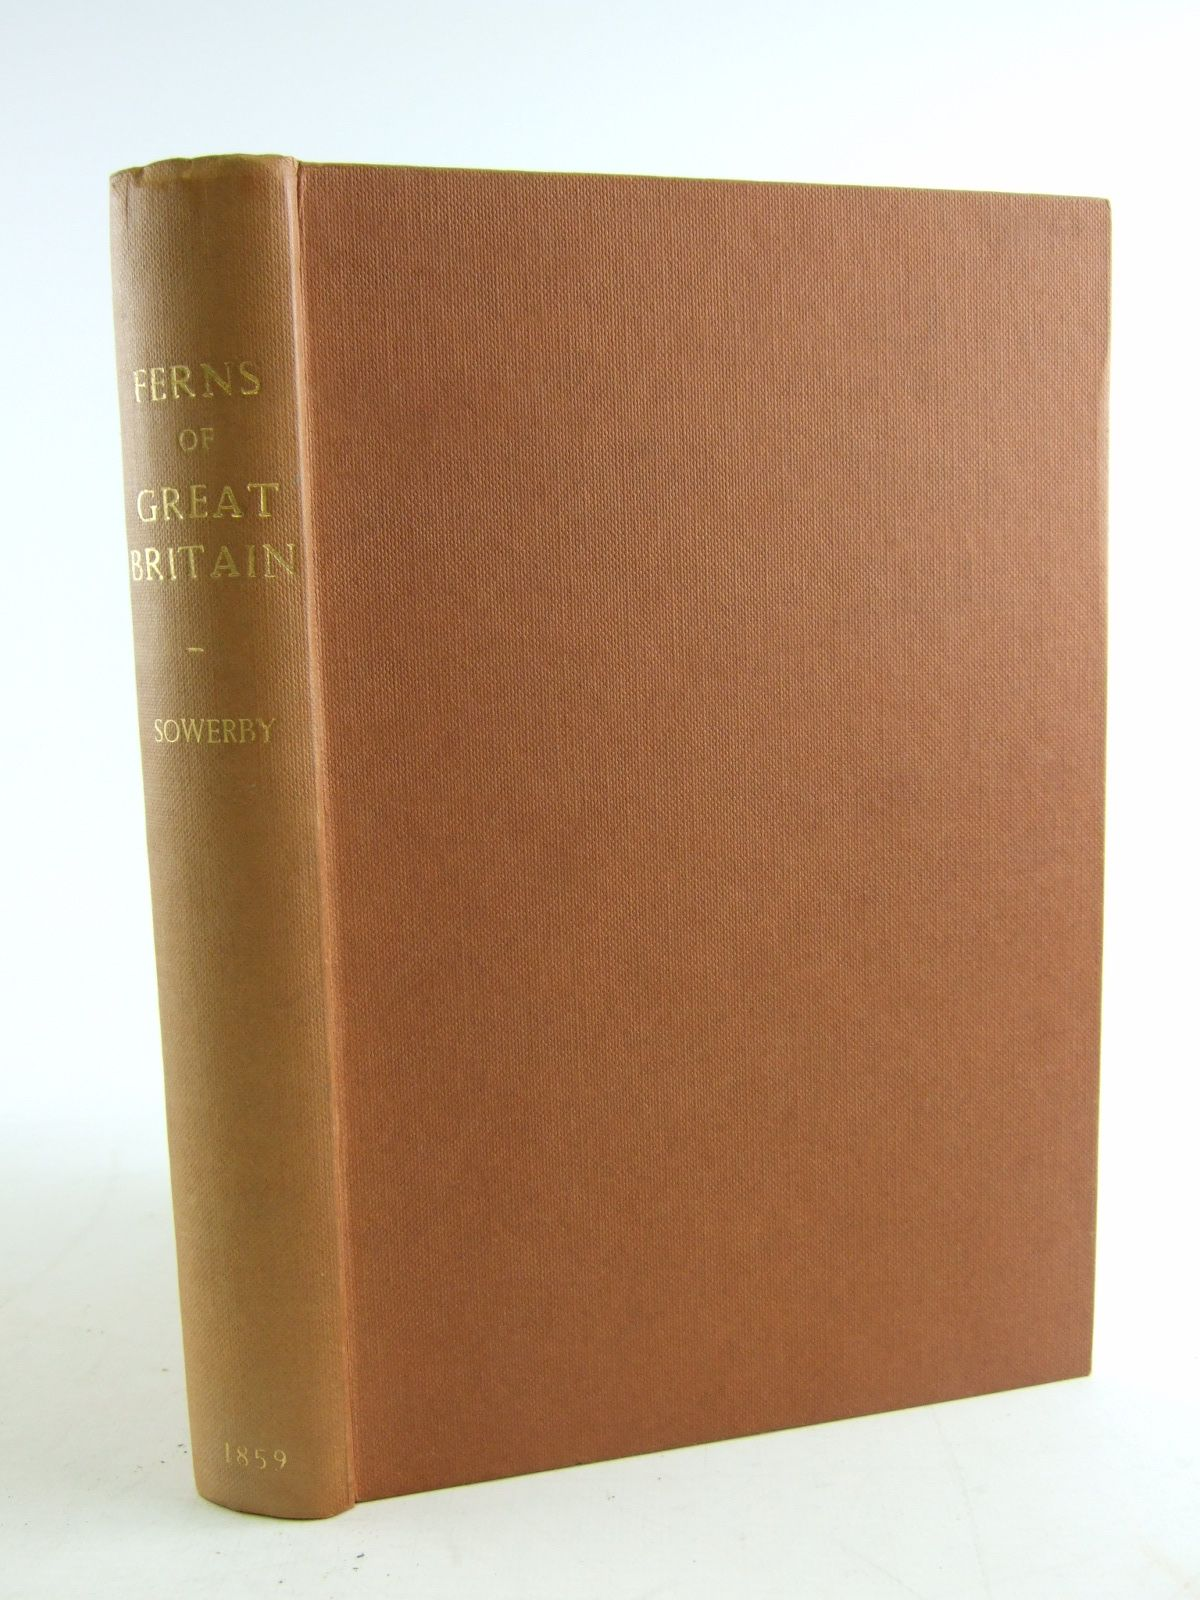 Photo of THE FERNS OF GREAT BRITAIN AND THE FERN ALLIES SUPPLEMENT TO THE FERNS OF GREAT BRITAIN written by Johnson, Charles illustrated by Sowerby, John E. published by Henry G. Bohn (STOCK CODE: 1805571)  for sale by Stella & Rose's Books